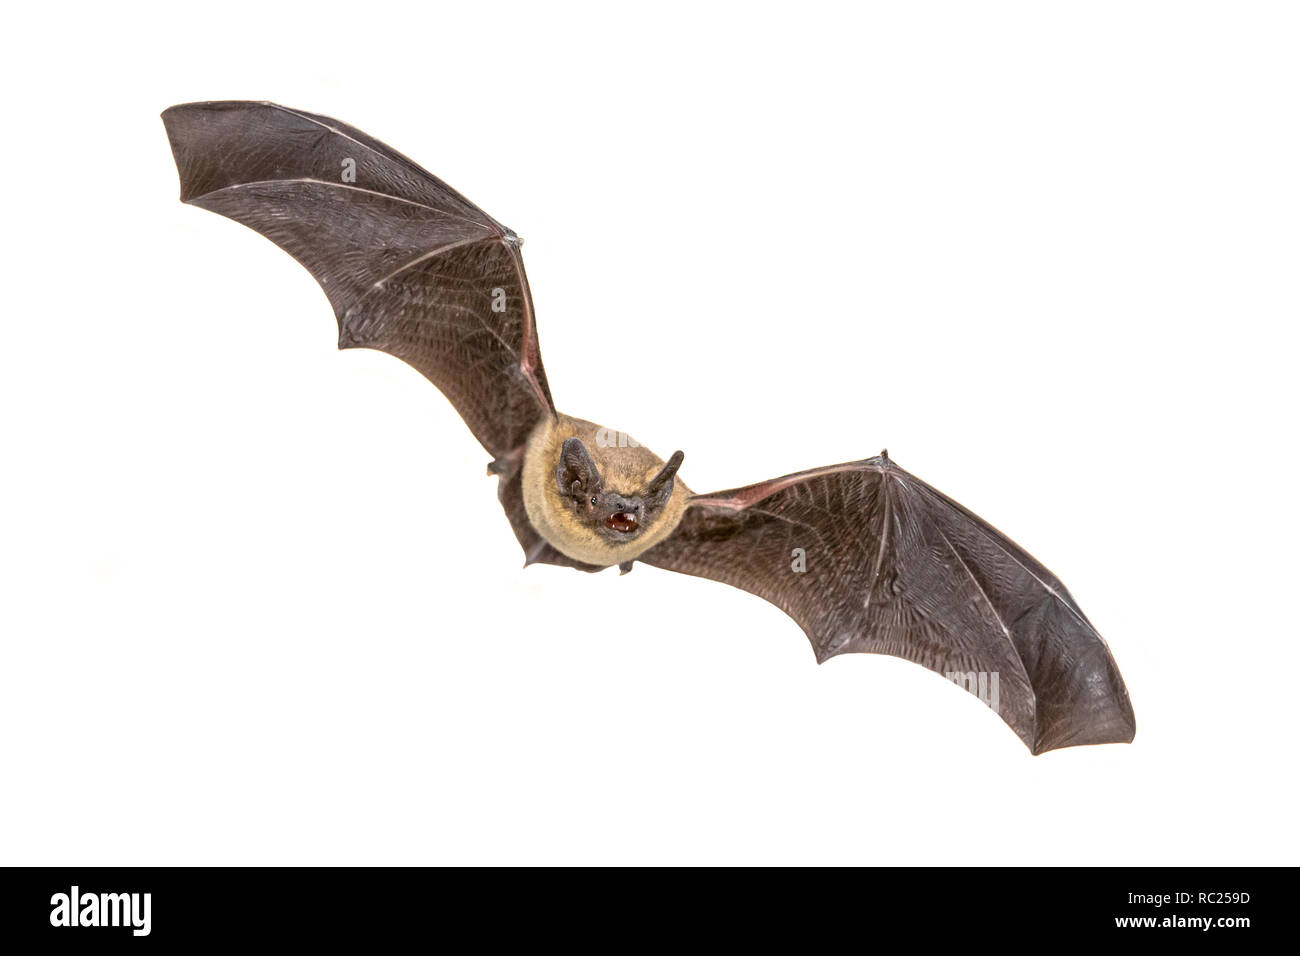 Flying Pipistrelle bat (Pipistrellus pipistrellus) action shot of hunting animal isolated on white background. This species is know for roosting and l - Stock Image